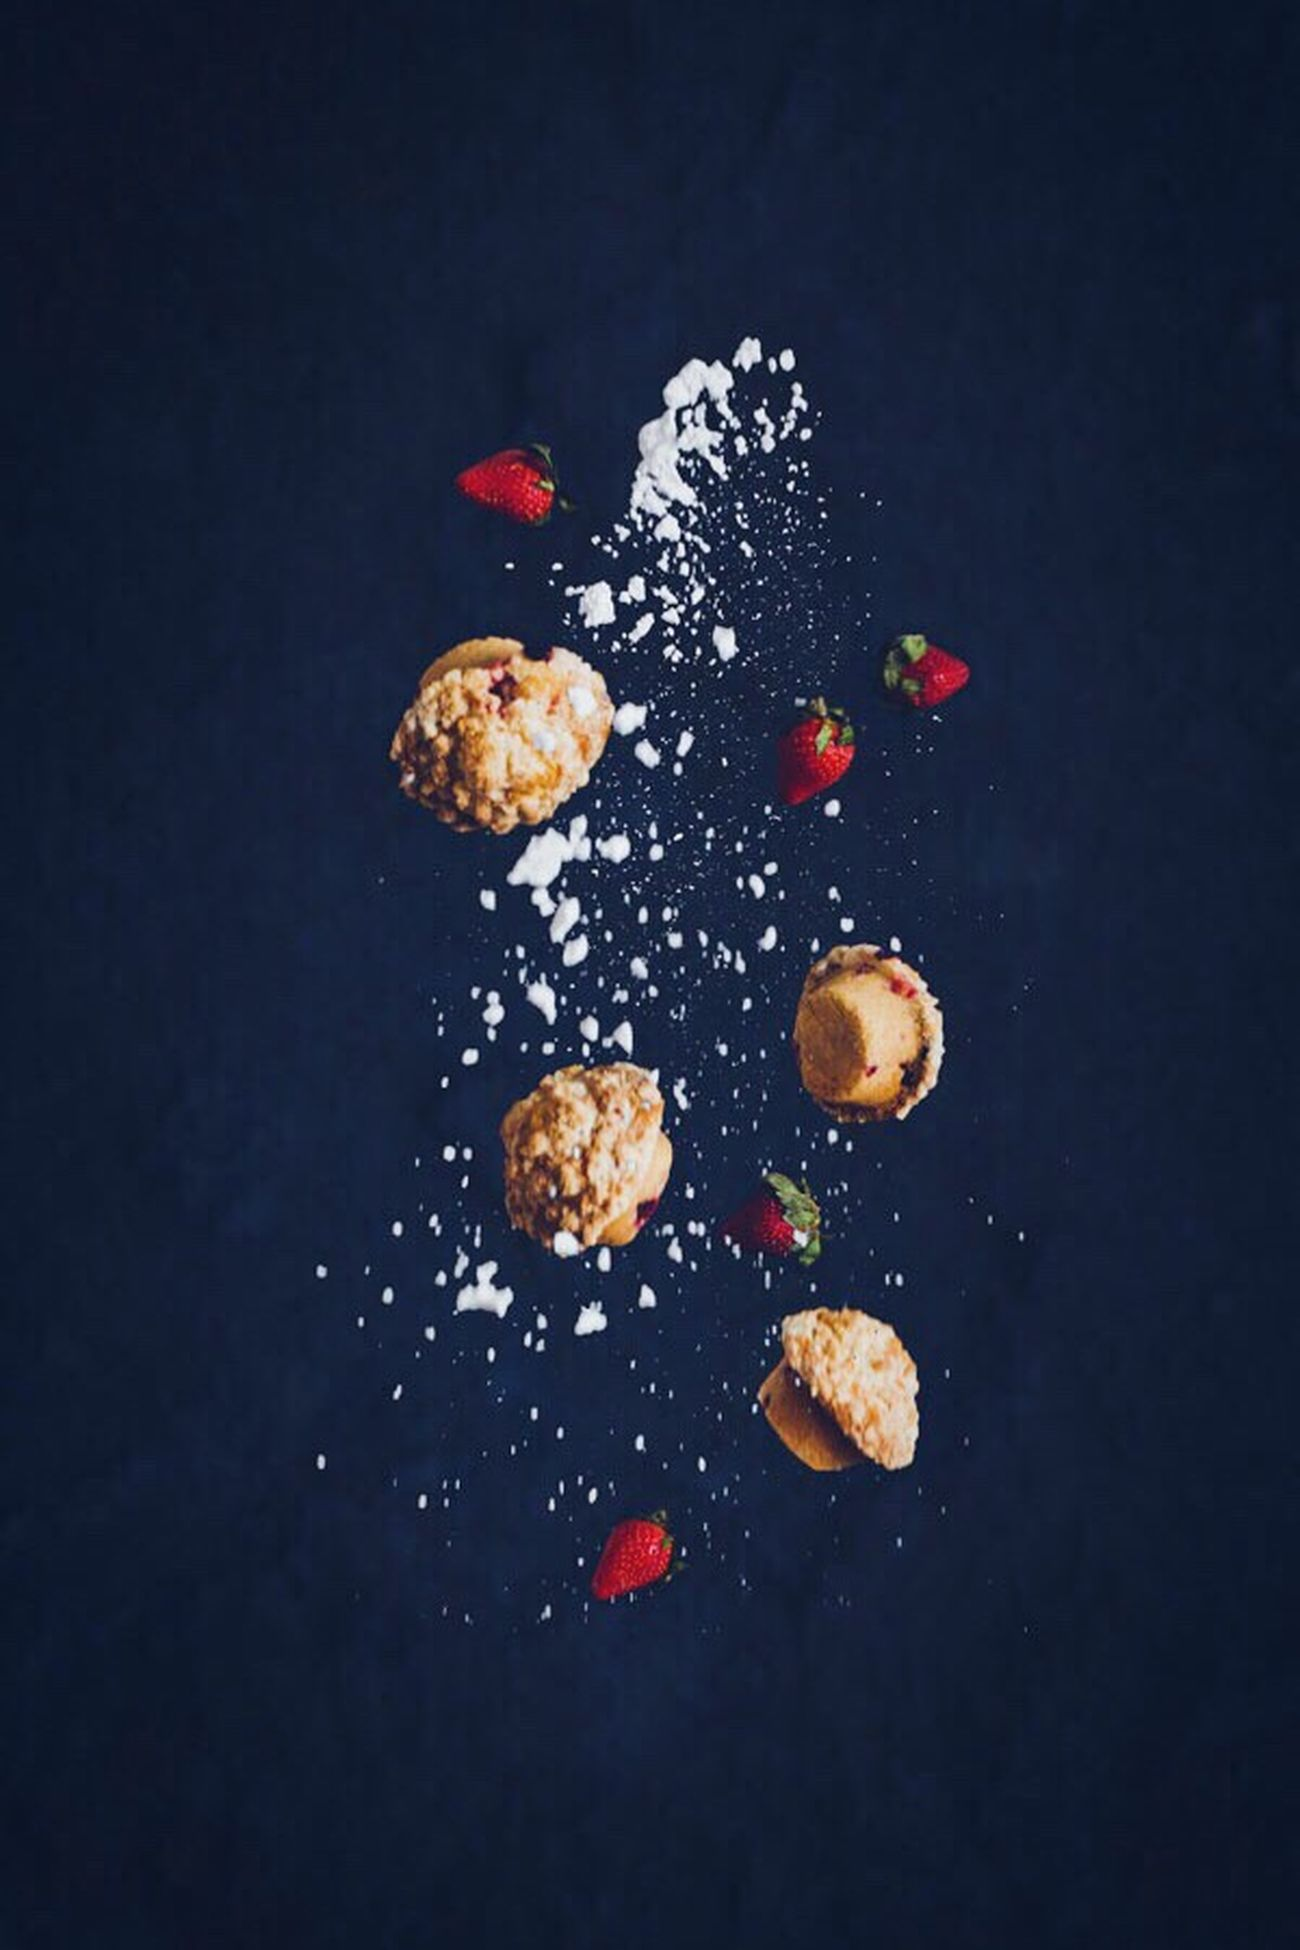 Photography In Motion Baking Muffins Foodphotography Foodstyling Food Weightless Weightlessness Strawberry Cake